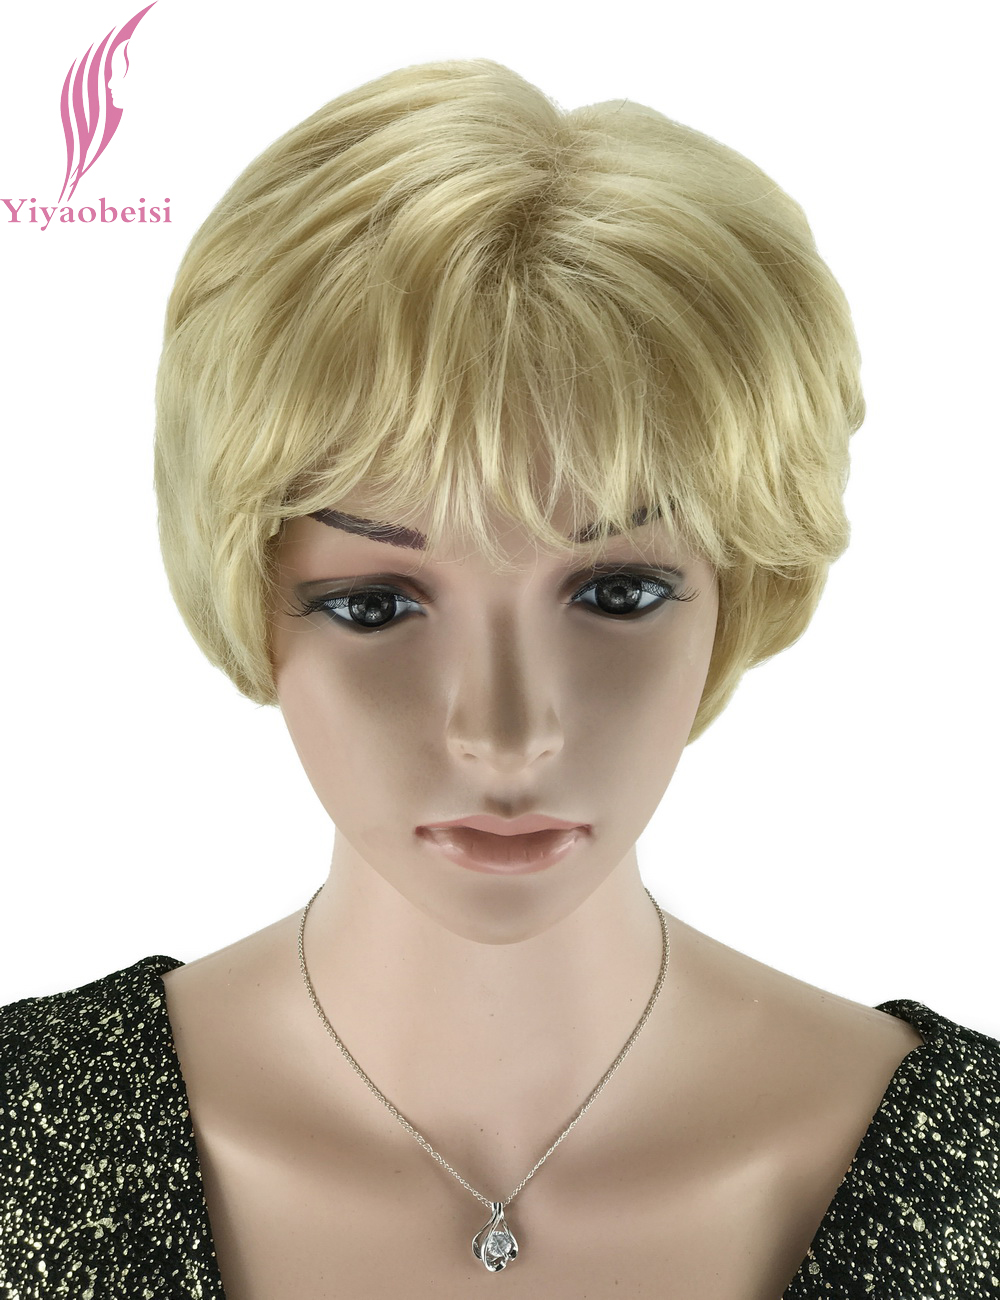 Yiyaobess 6inch Light Blonde Wigs For Older Women Puffy Hairstyles Synthetic Natural African American Short Hair Wig